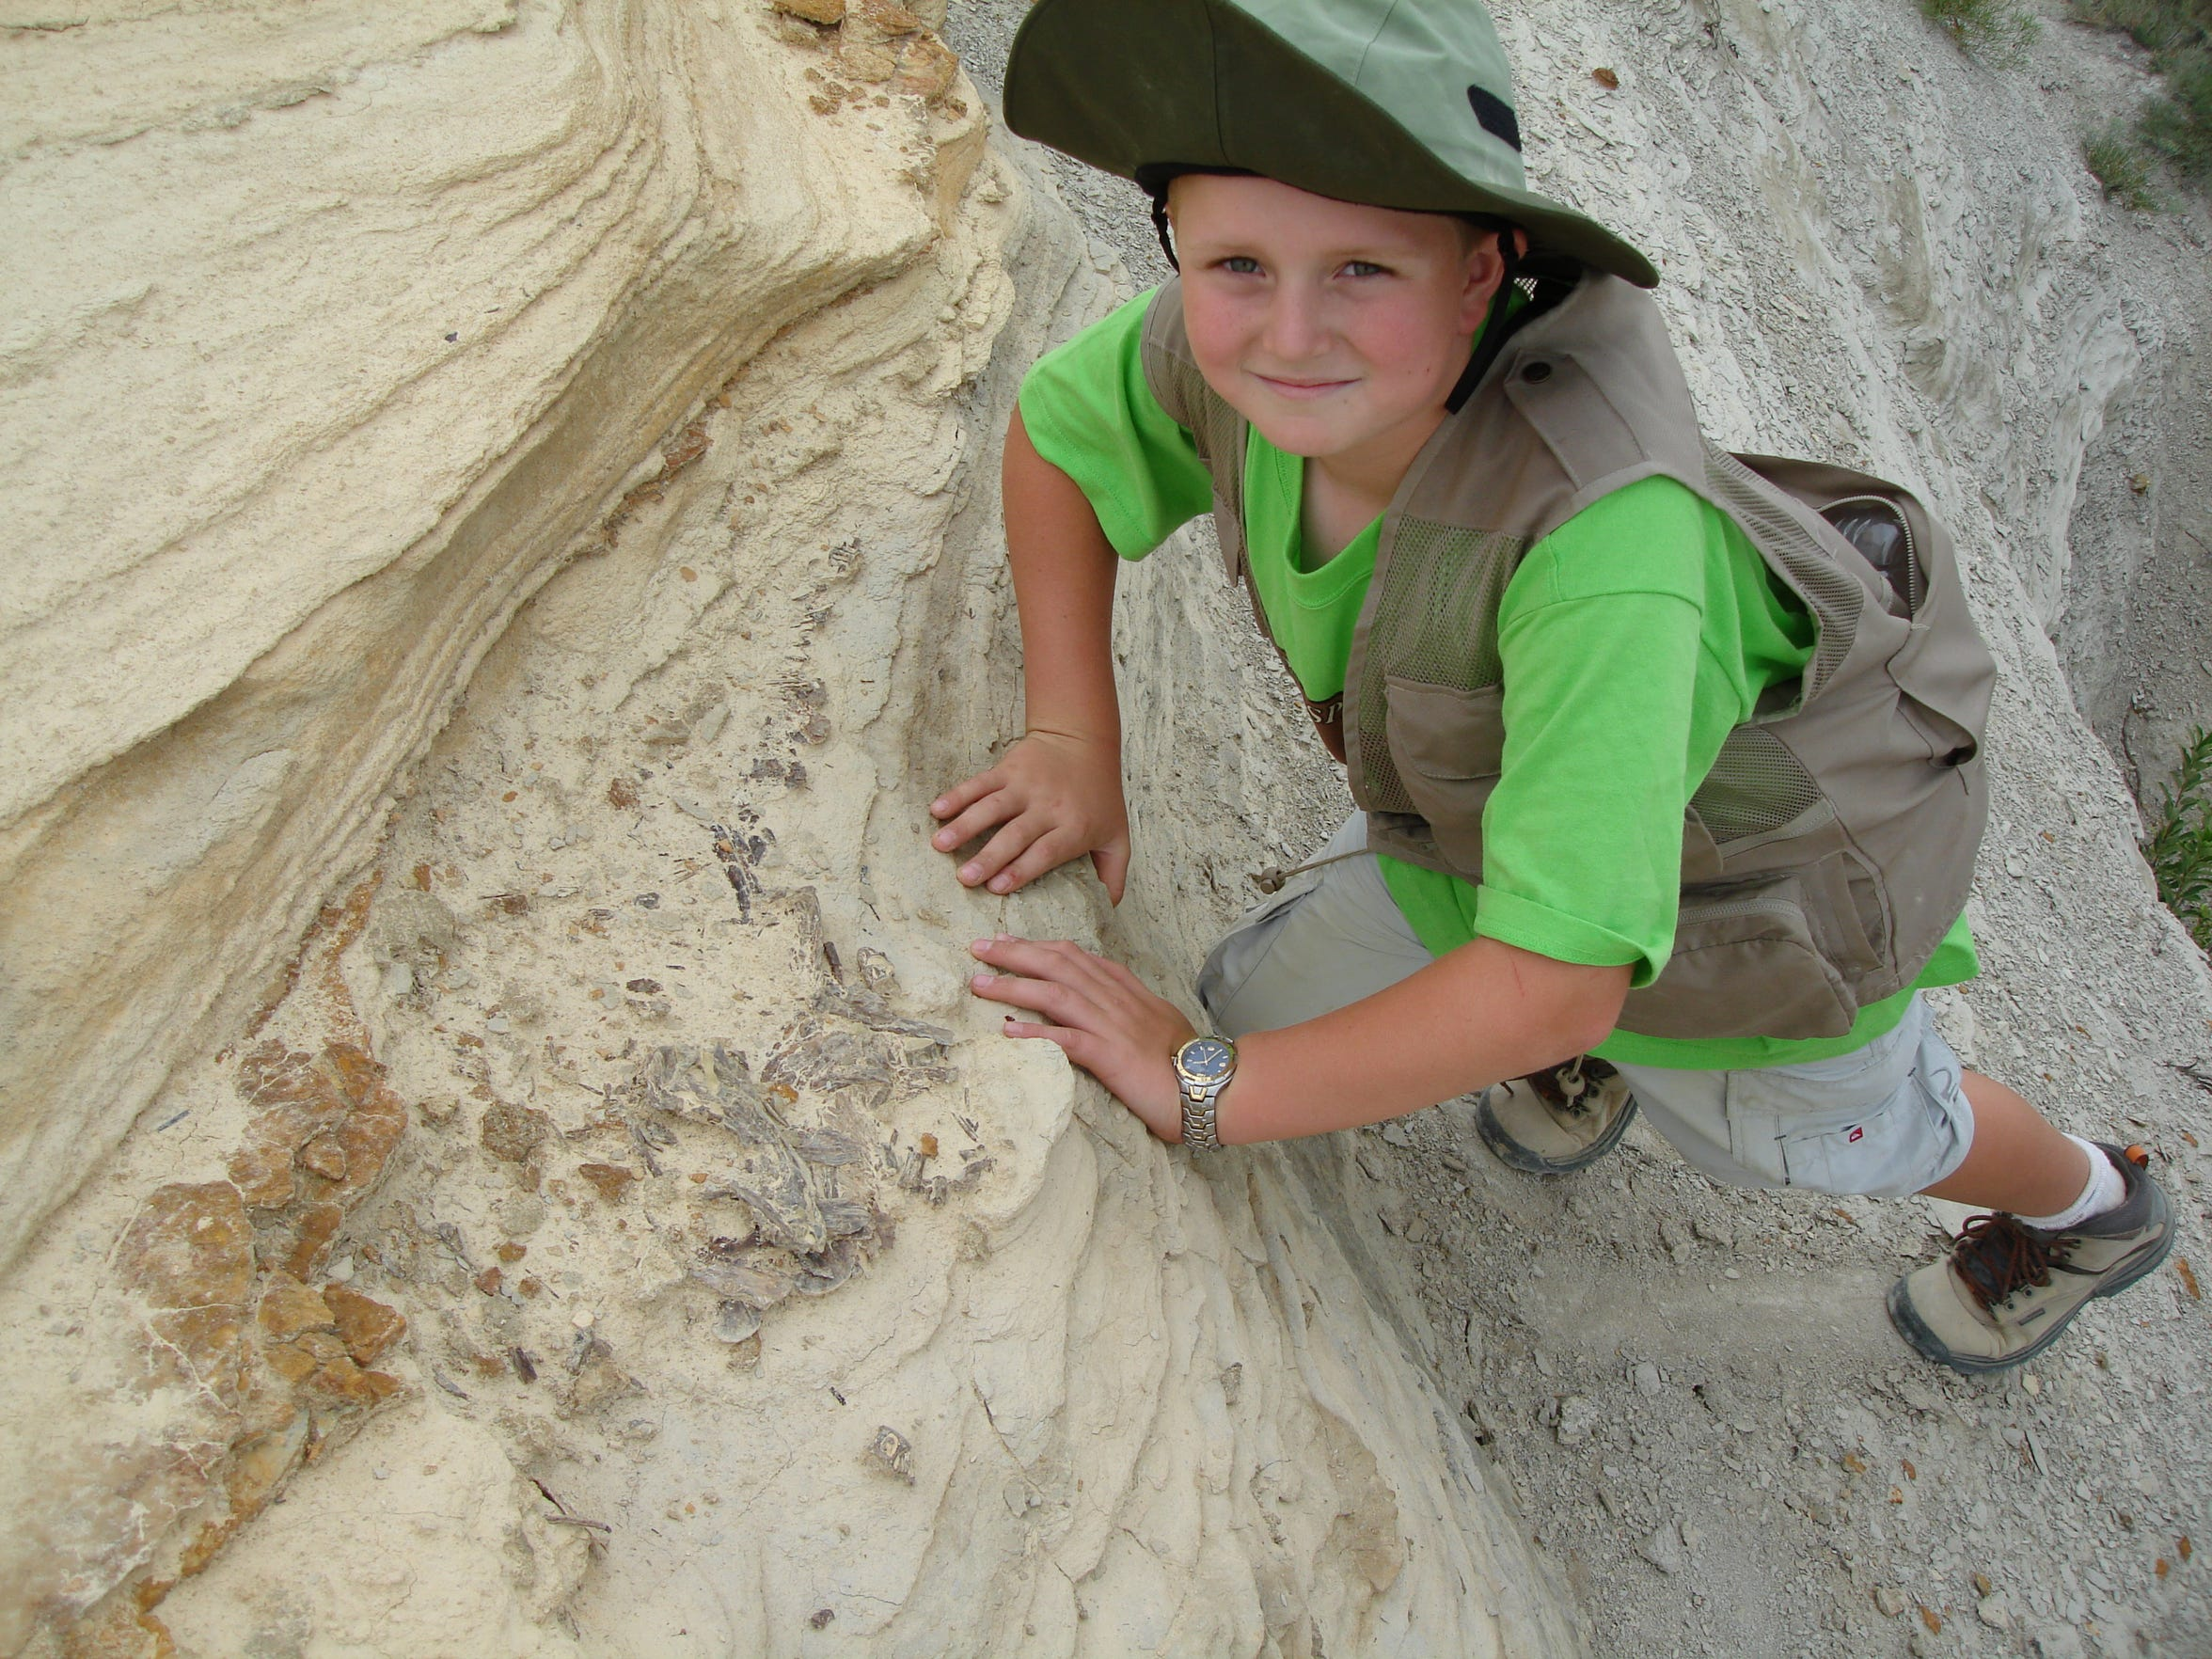 Purdue fifth-year senior forward Evan Boudreaux around age 9 in 2006, showing a fish fossil he found on one of his family's fossil dig trips.